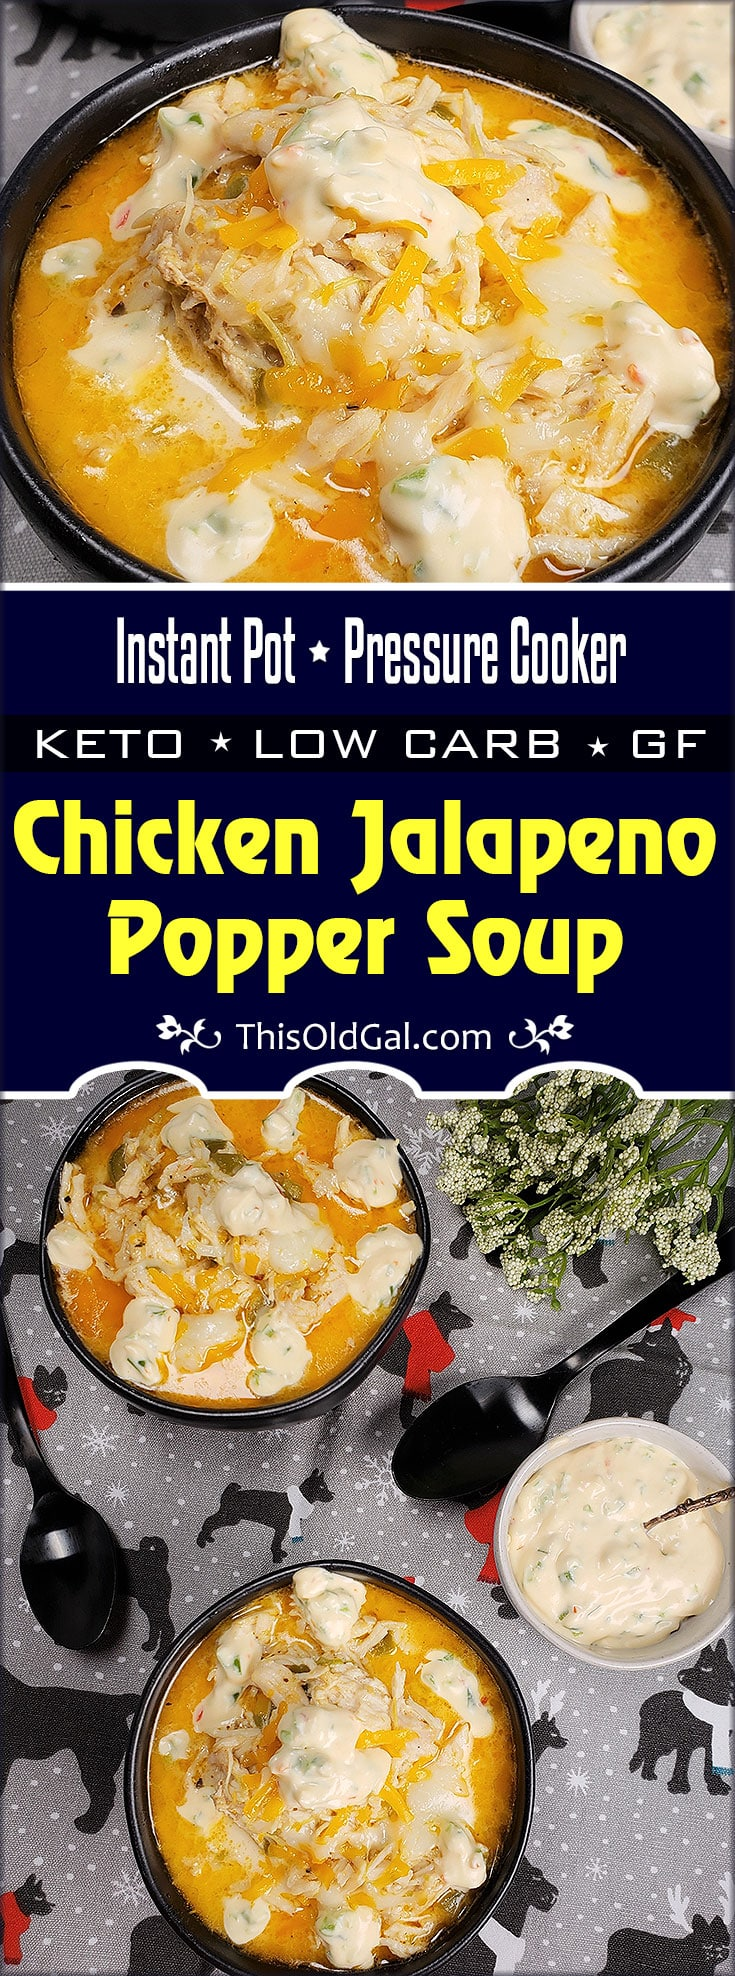 Pressure Cooker Chicken Jalapeno Popper Soup ~ Low Carb/Keto